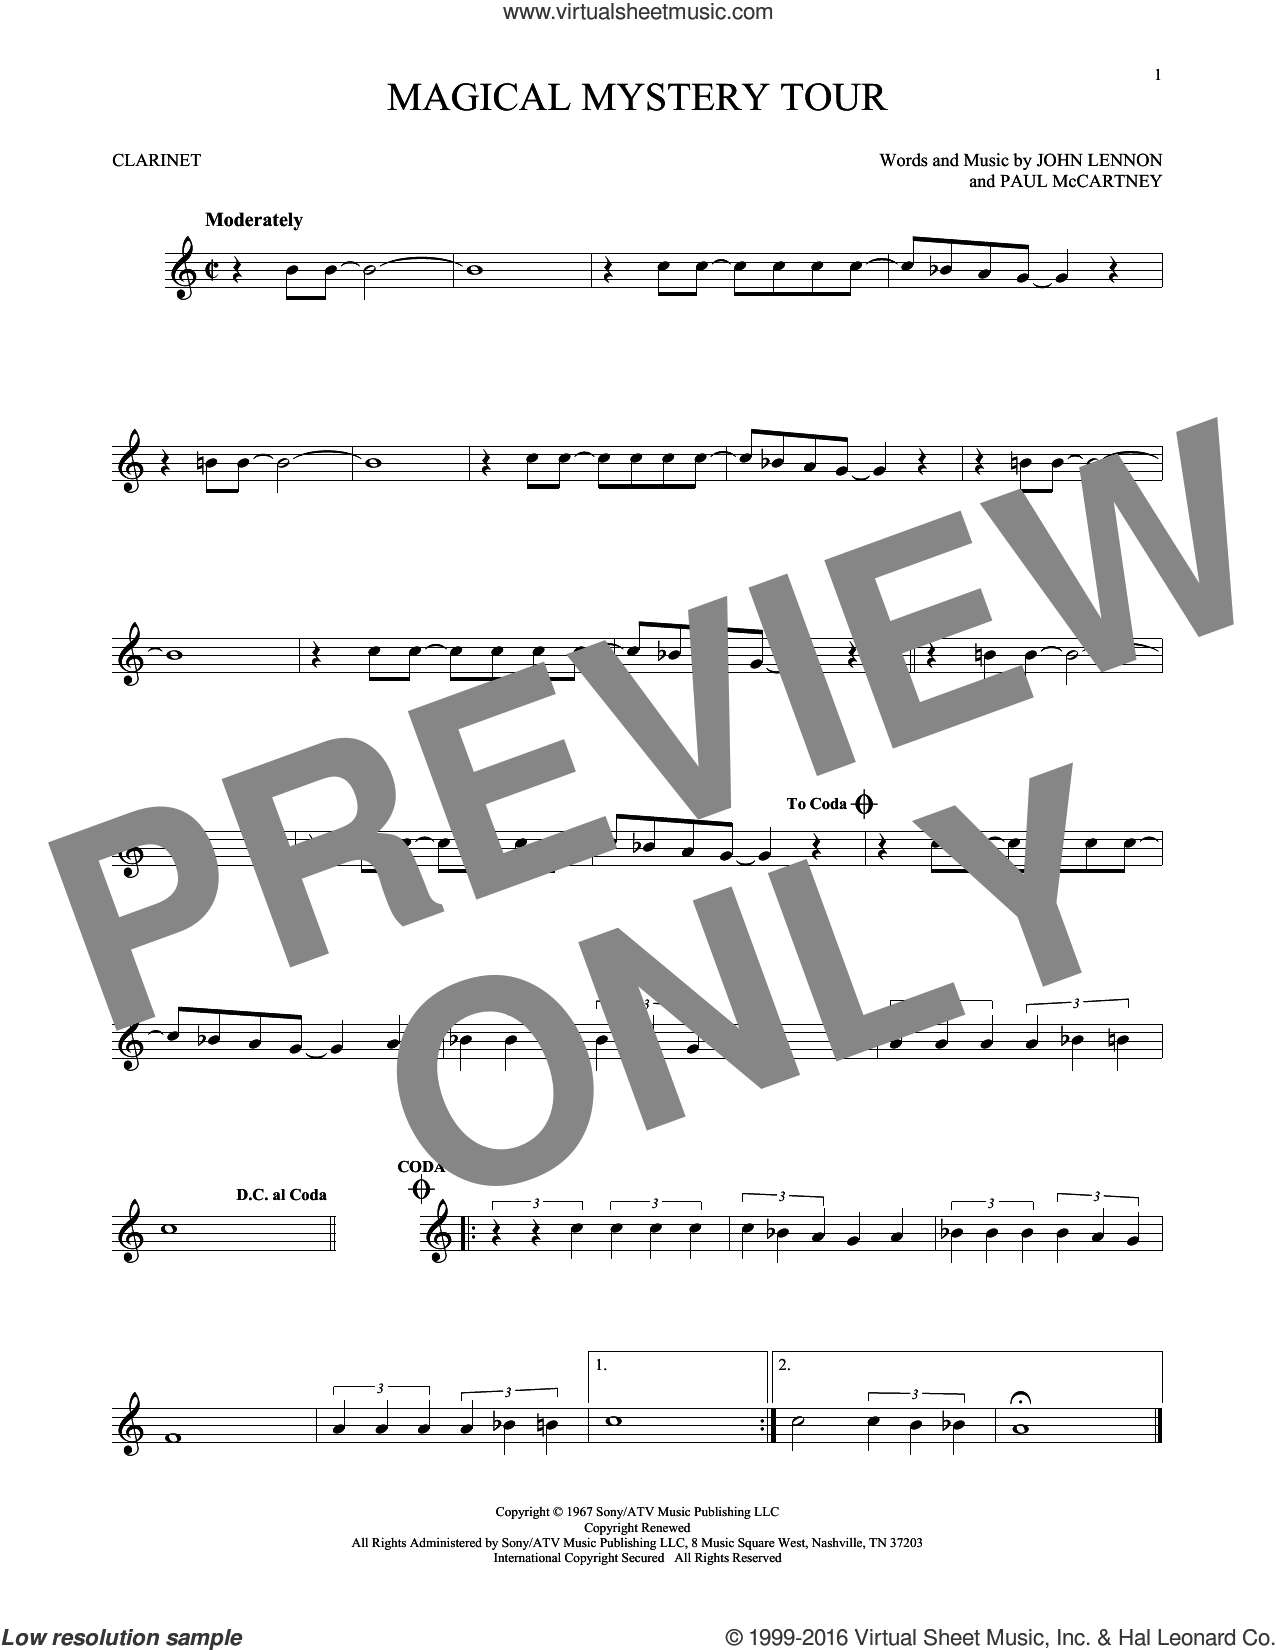 Magical Mystery Tour sheet music for clarinet solo by The Beatles, John Lennon and Paul McCartney, intermediate skill level